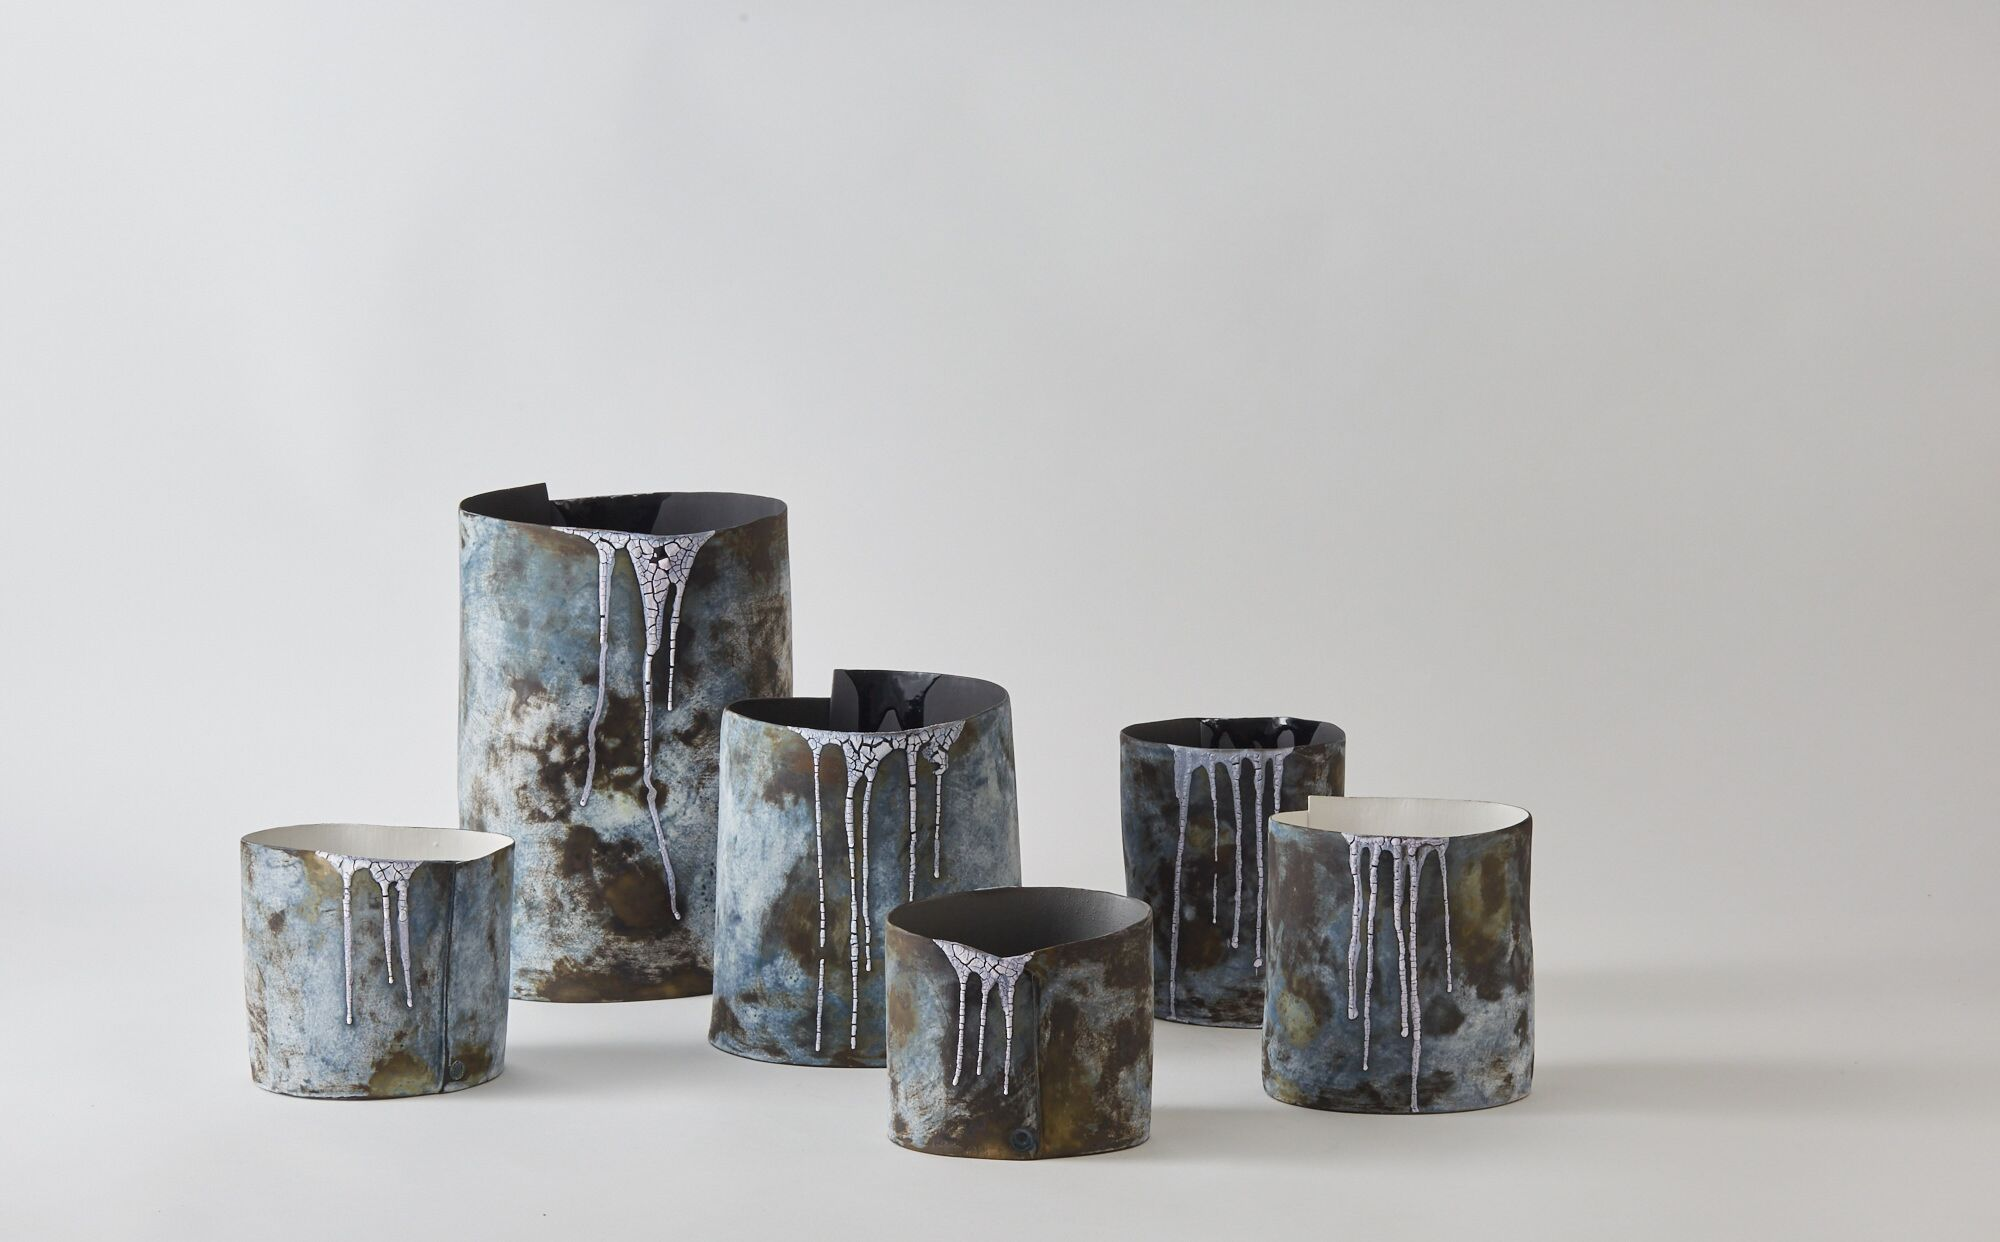 This is part of a collection of stoneware vessels made following the artist's visit to Iceland. It is a perfect medium to reflect her responses to that country's fragile, watery,changing landscapes.